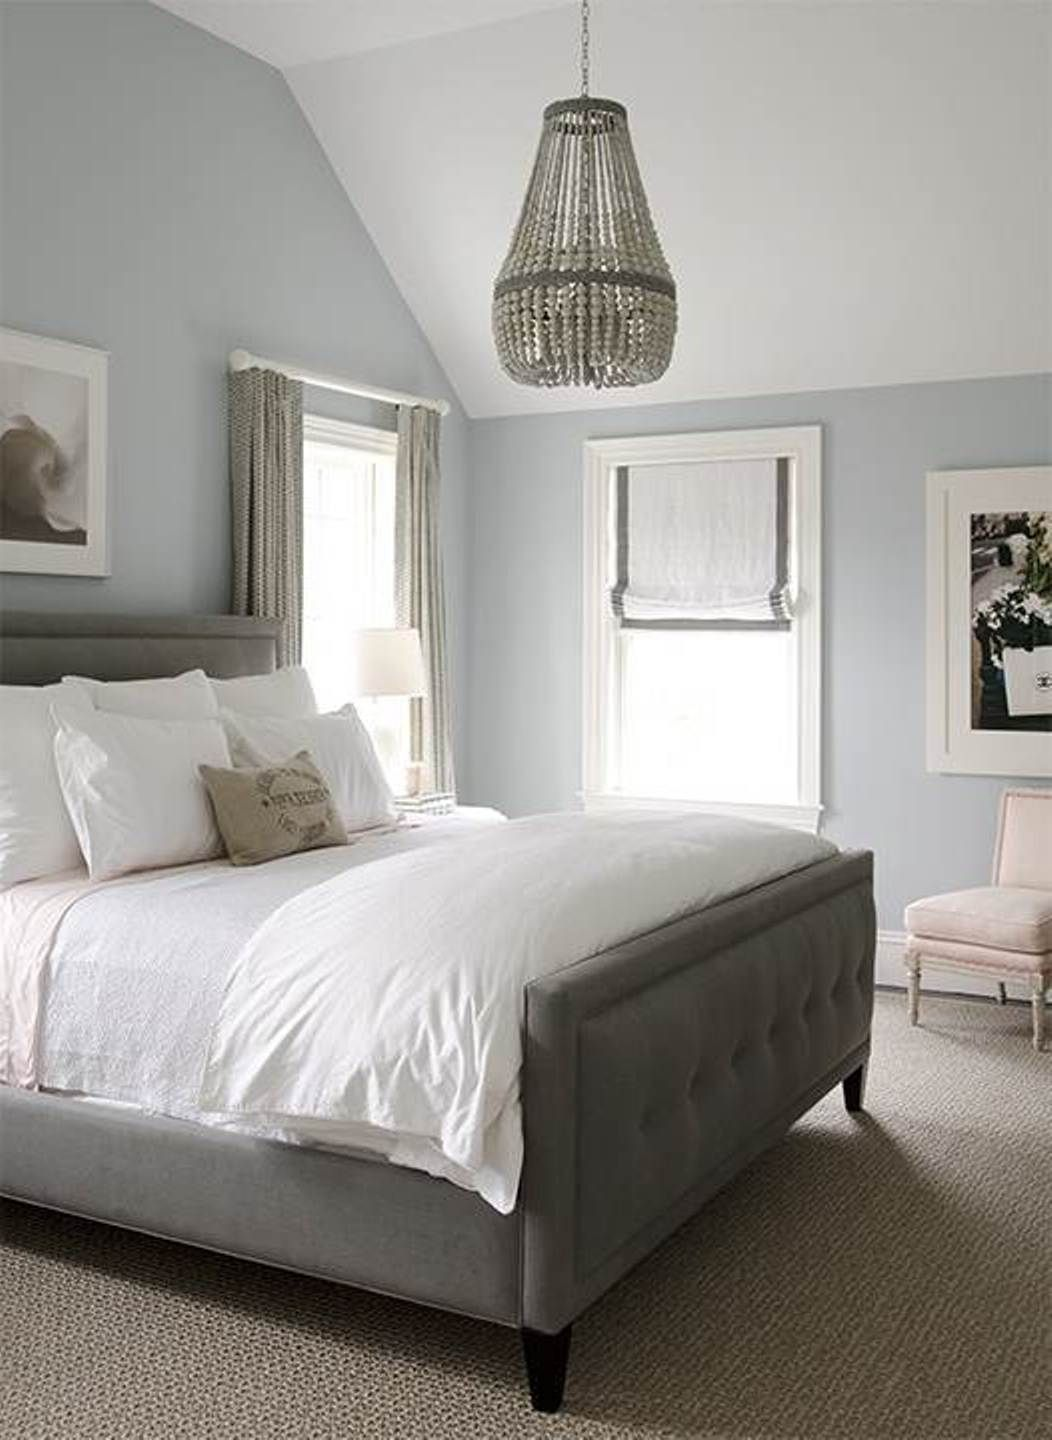 Simple Bedroom Painting Ideas love the grey. cute master bedroom ideas on a budget : decorating